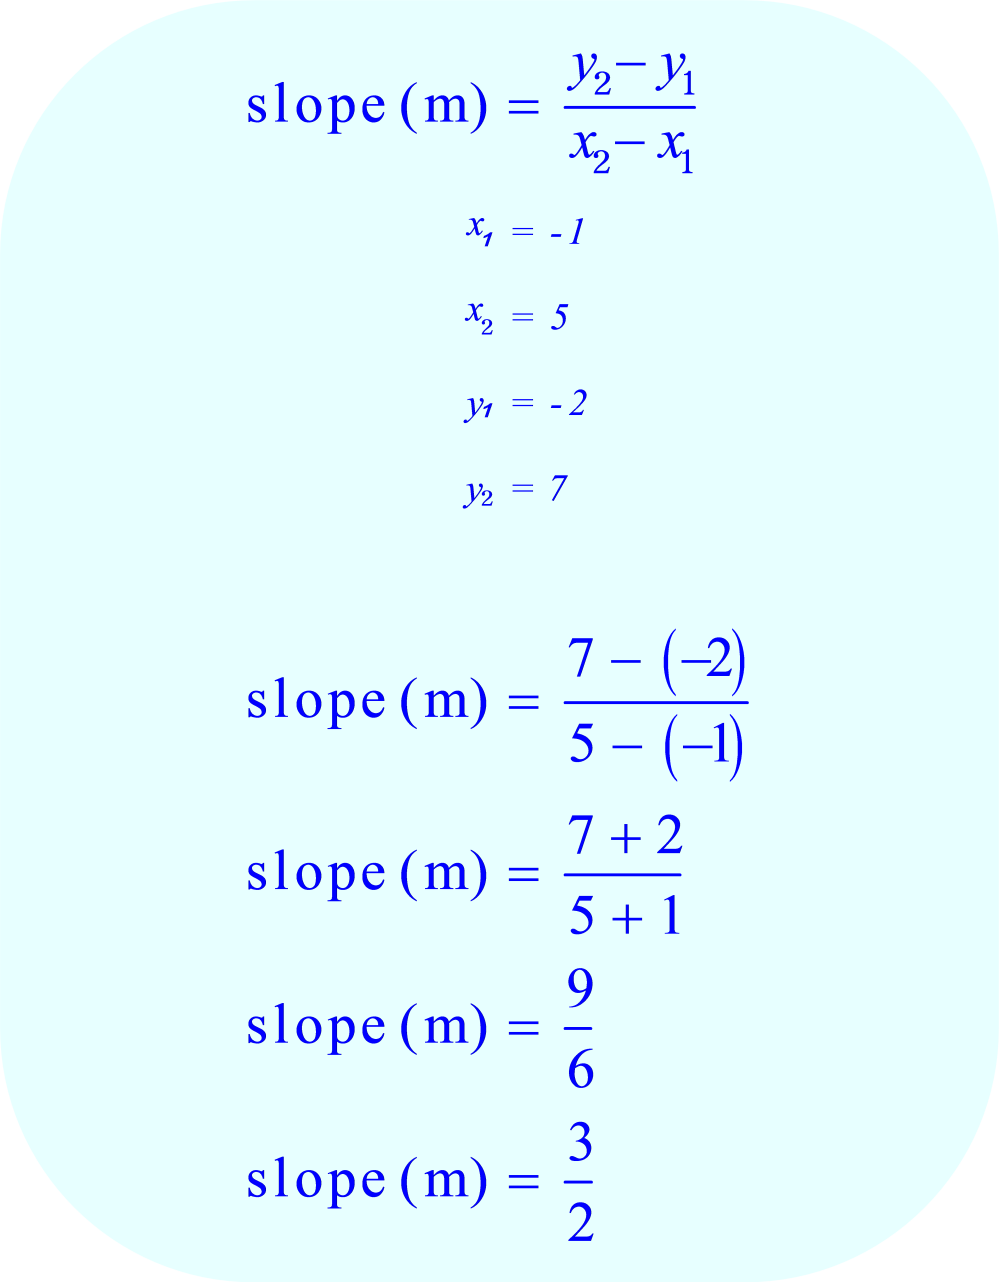 Compute the slope (m) of line 'a' where